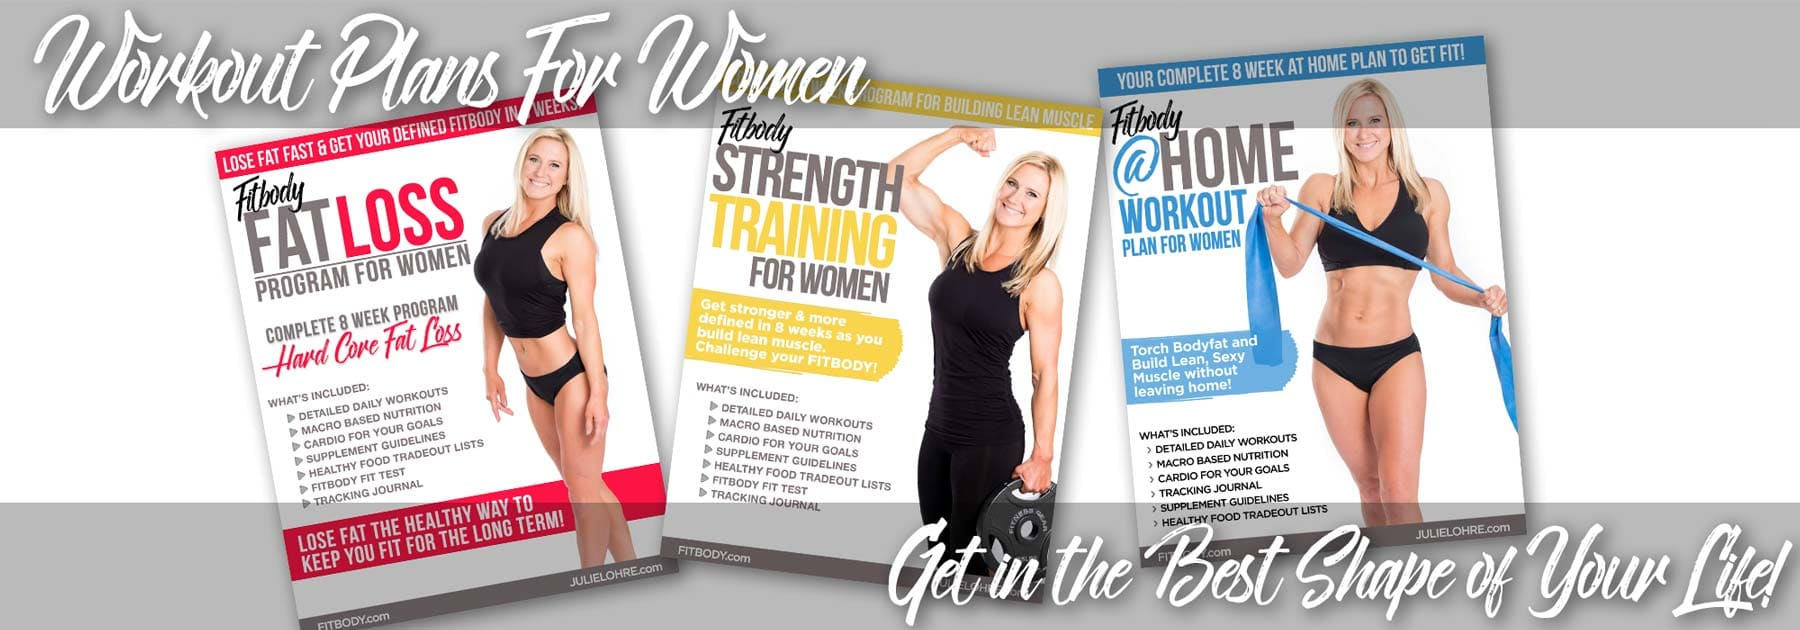 Workout Plans for Women